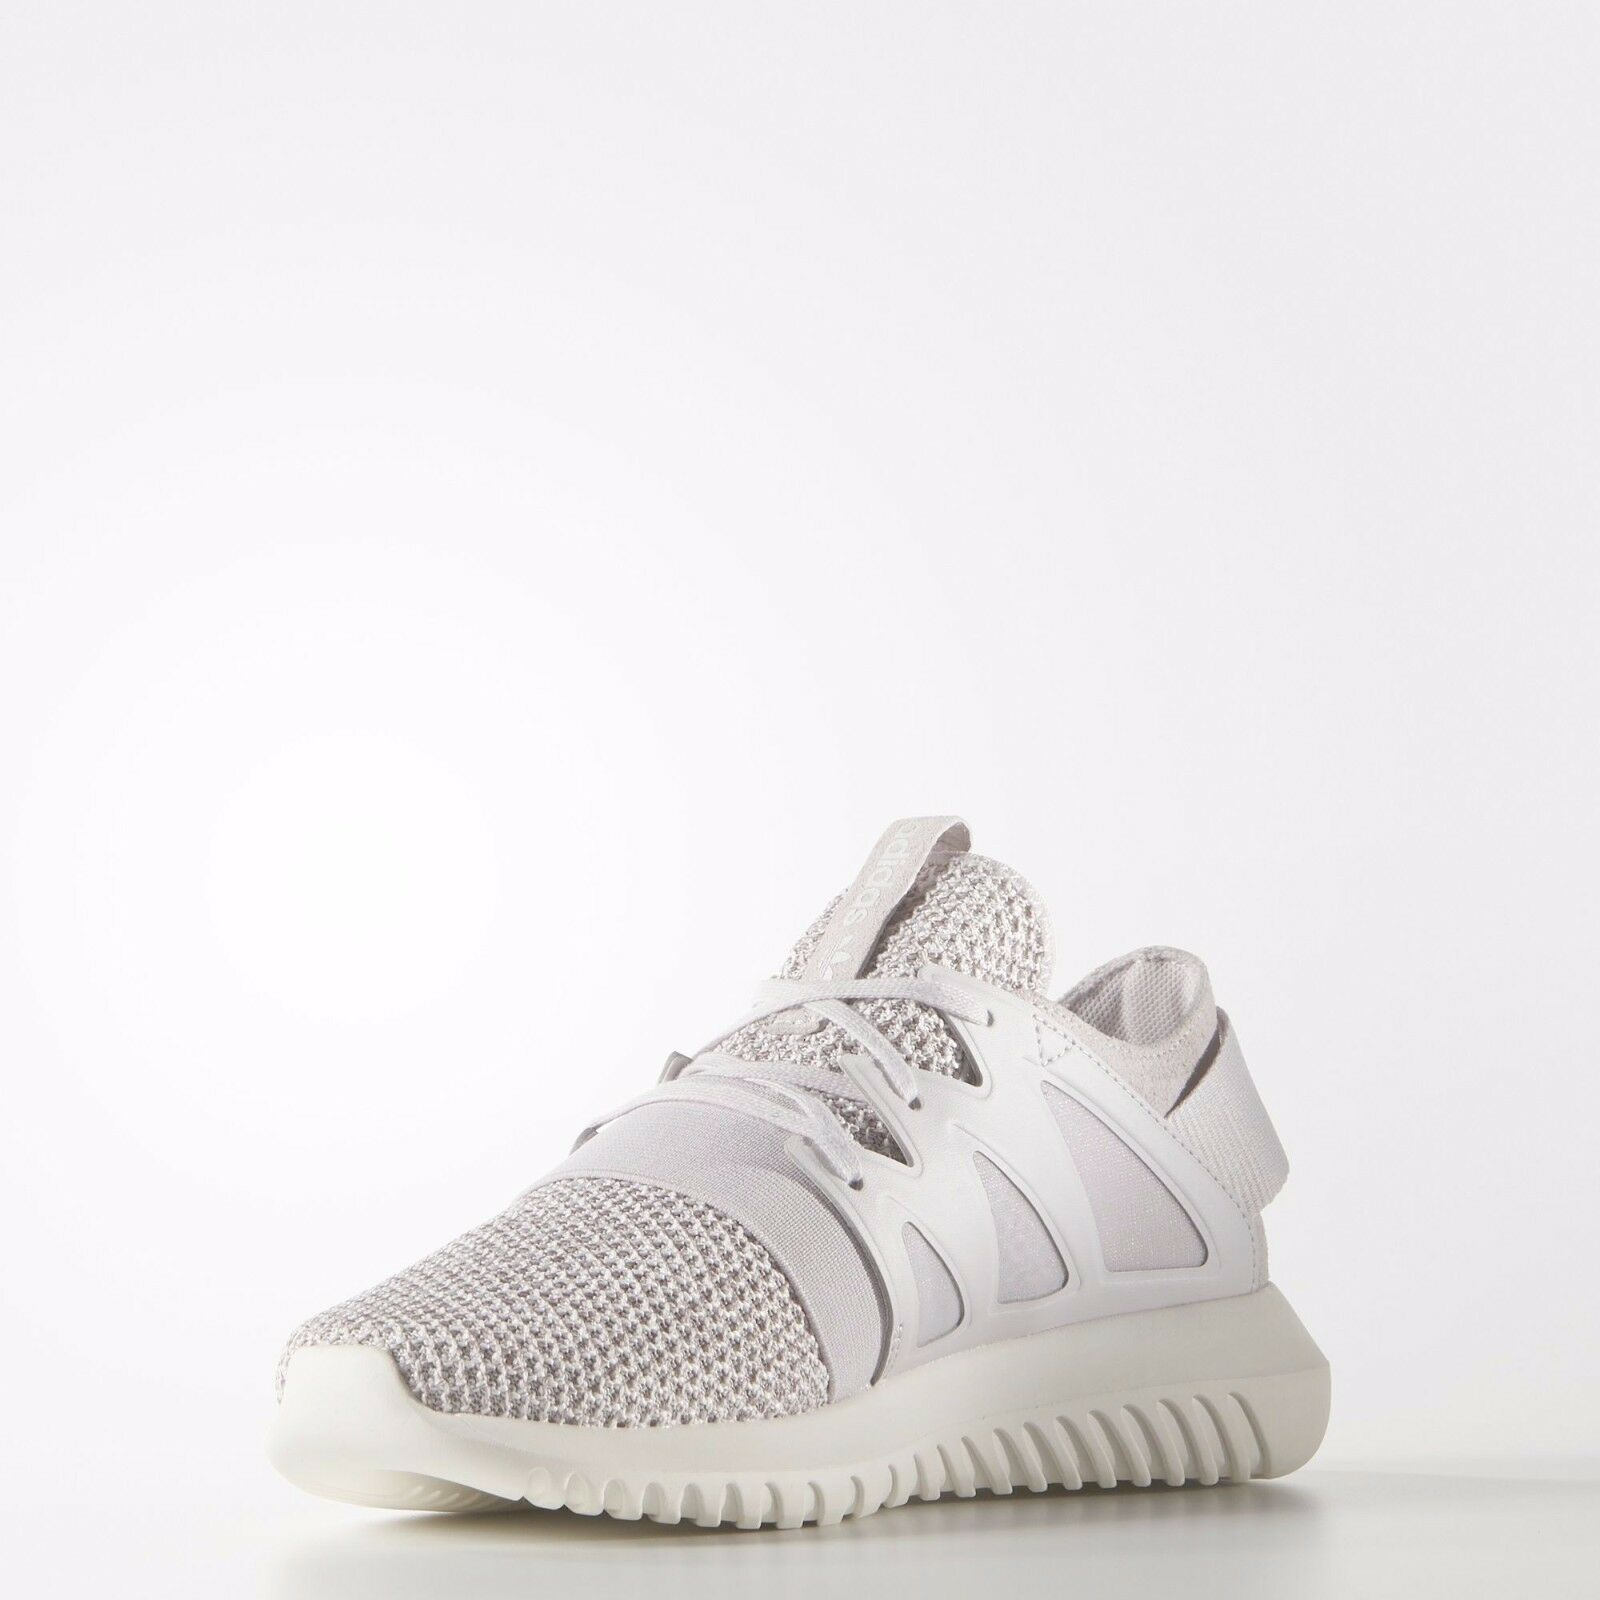 Adidas Originals Originals Originals Women's Tubular Viral NEW AUTHENTIC Ice Purple S75906 size 9.5 f5a0c8